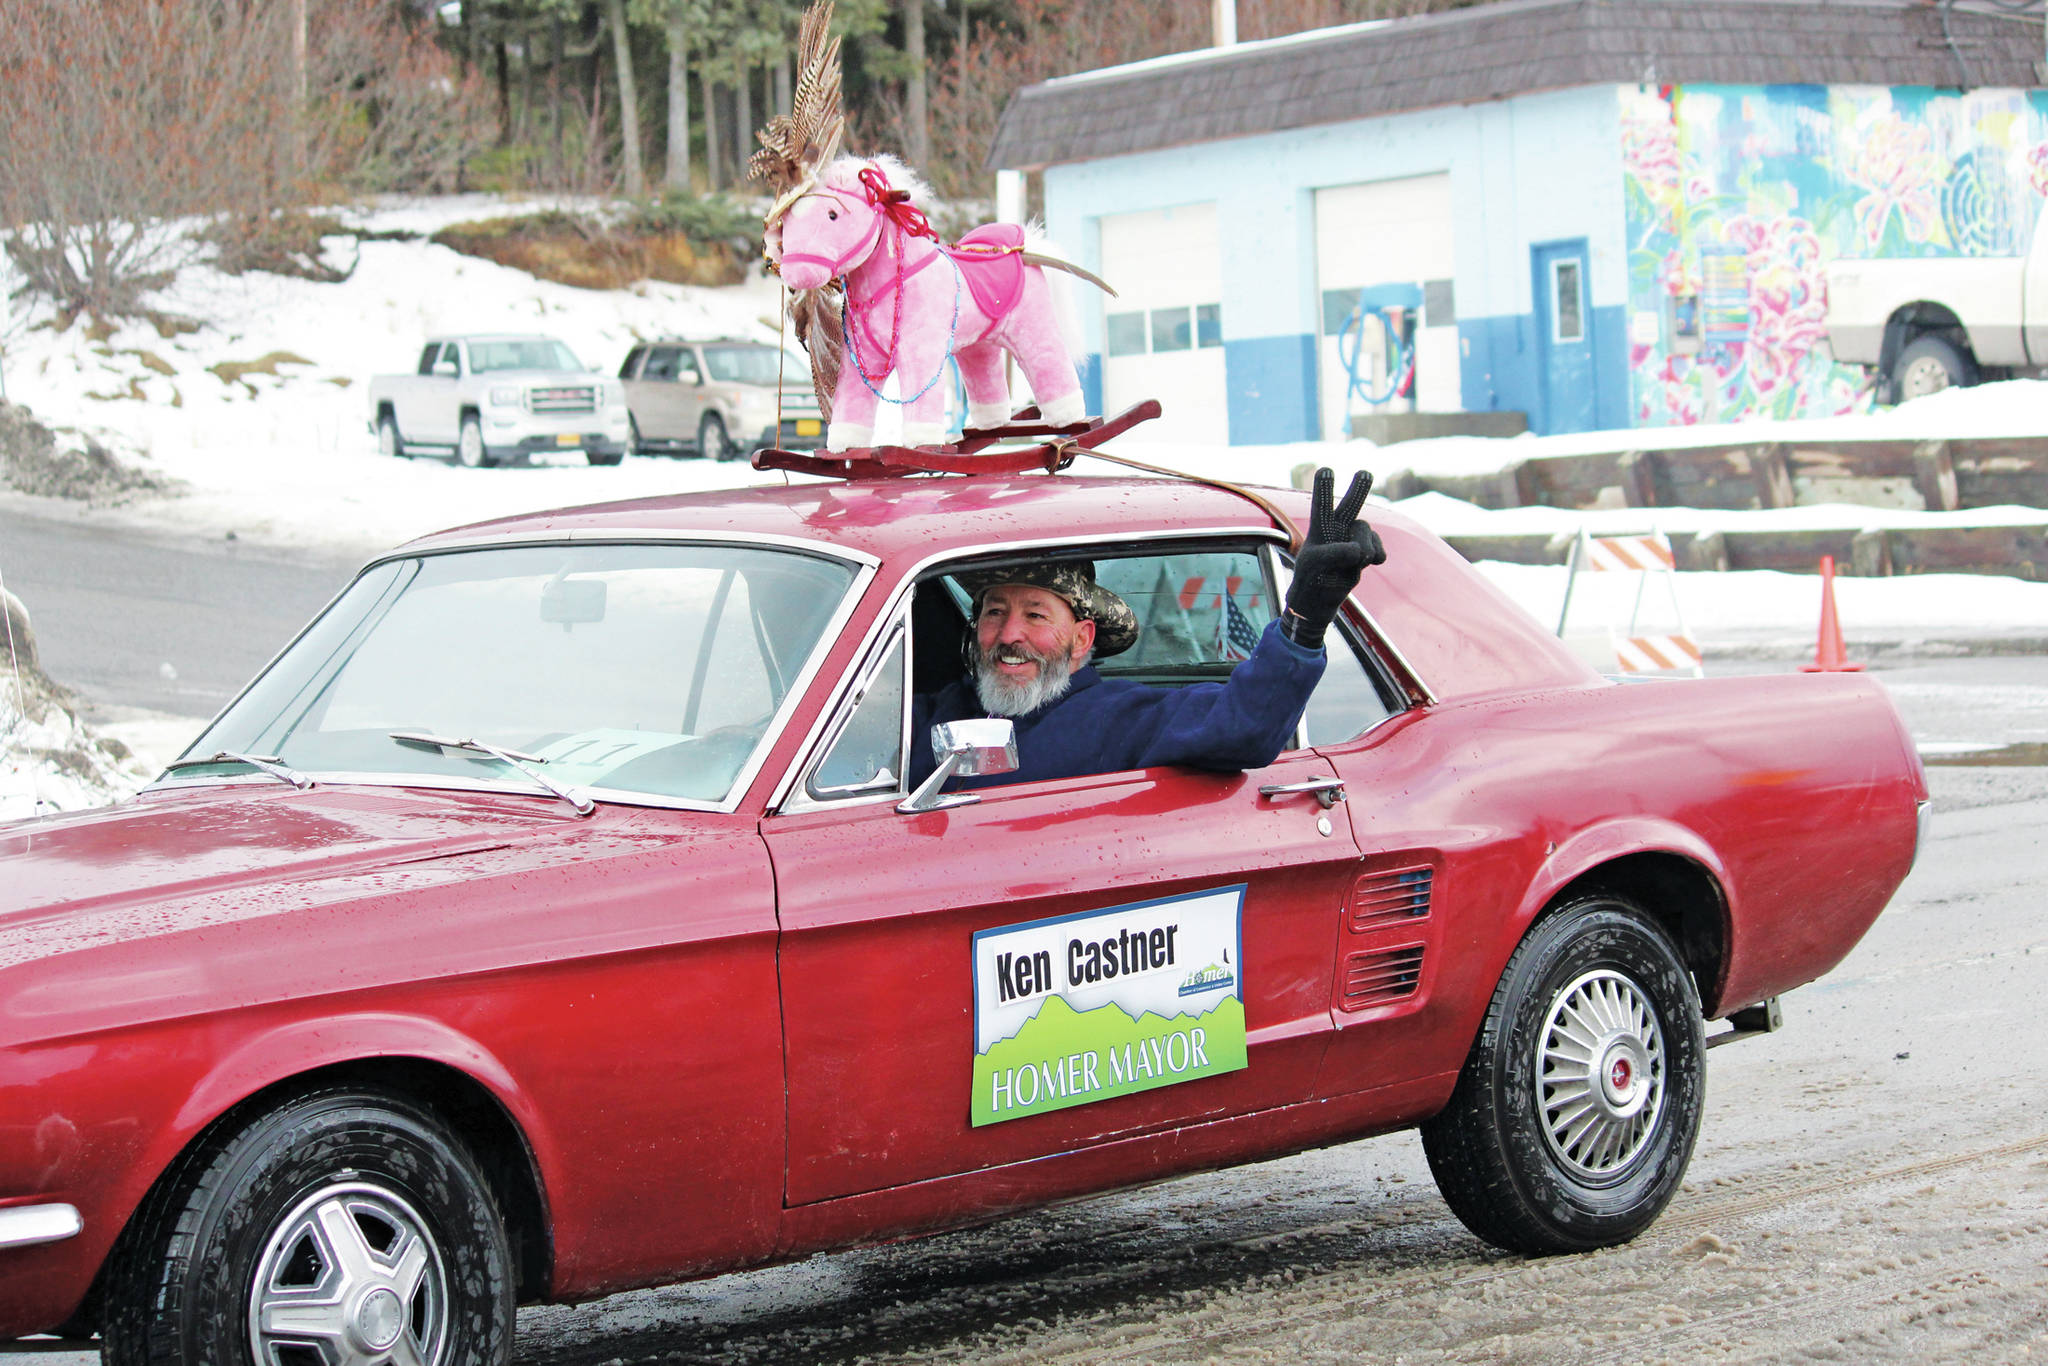 Former Mayor Bryan Zak drives the car for the float representing Mayor Ken Castner's office during this year's Homer Winter Carnival Parade on Saturday, Feb. 8, 2020 on Pioneer Avenue in Homer, Alaska. (Photo by Megan Pacer/Homer News)